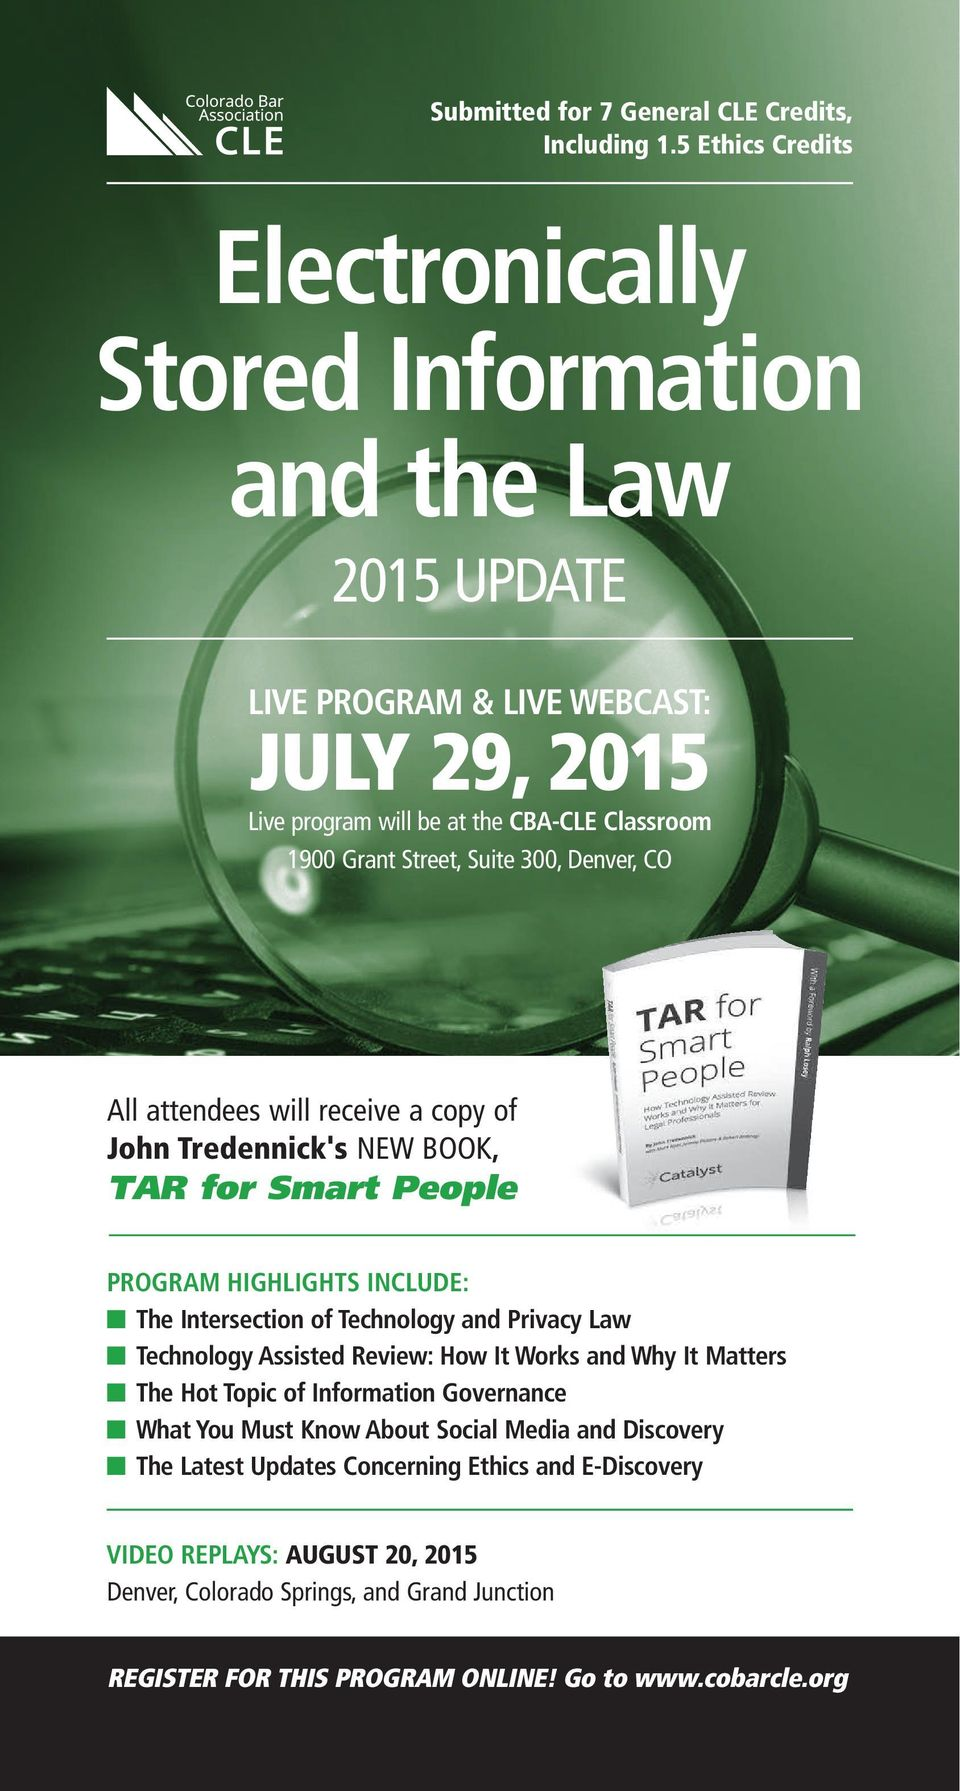 Suite 300, All attendees will receive a copy of John Tredennick's NEW BOOK, TAR for Smart People PROGRAM HIGHLIGHTS INCLUDE: The Intersection of Technology and Privacy Law Technology